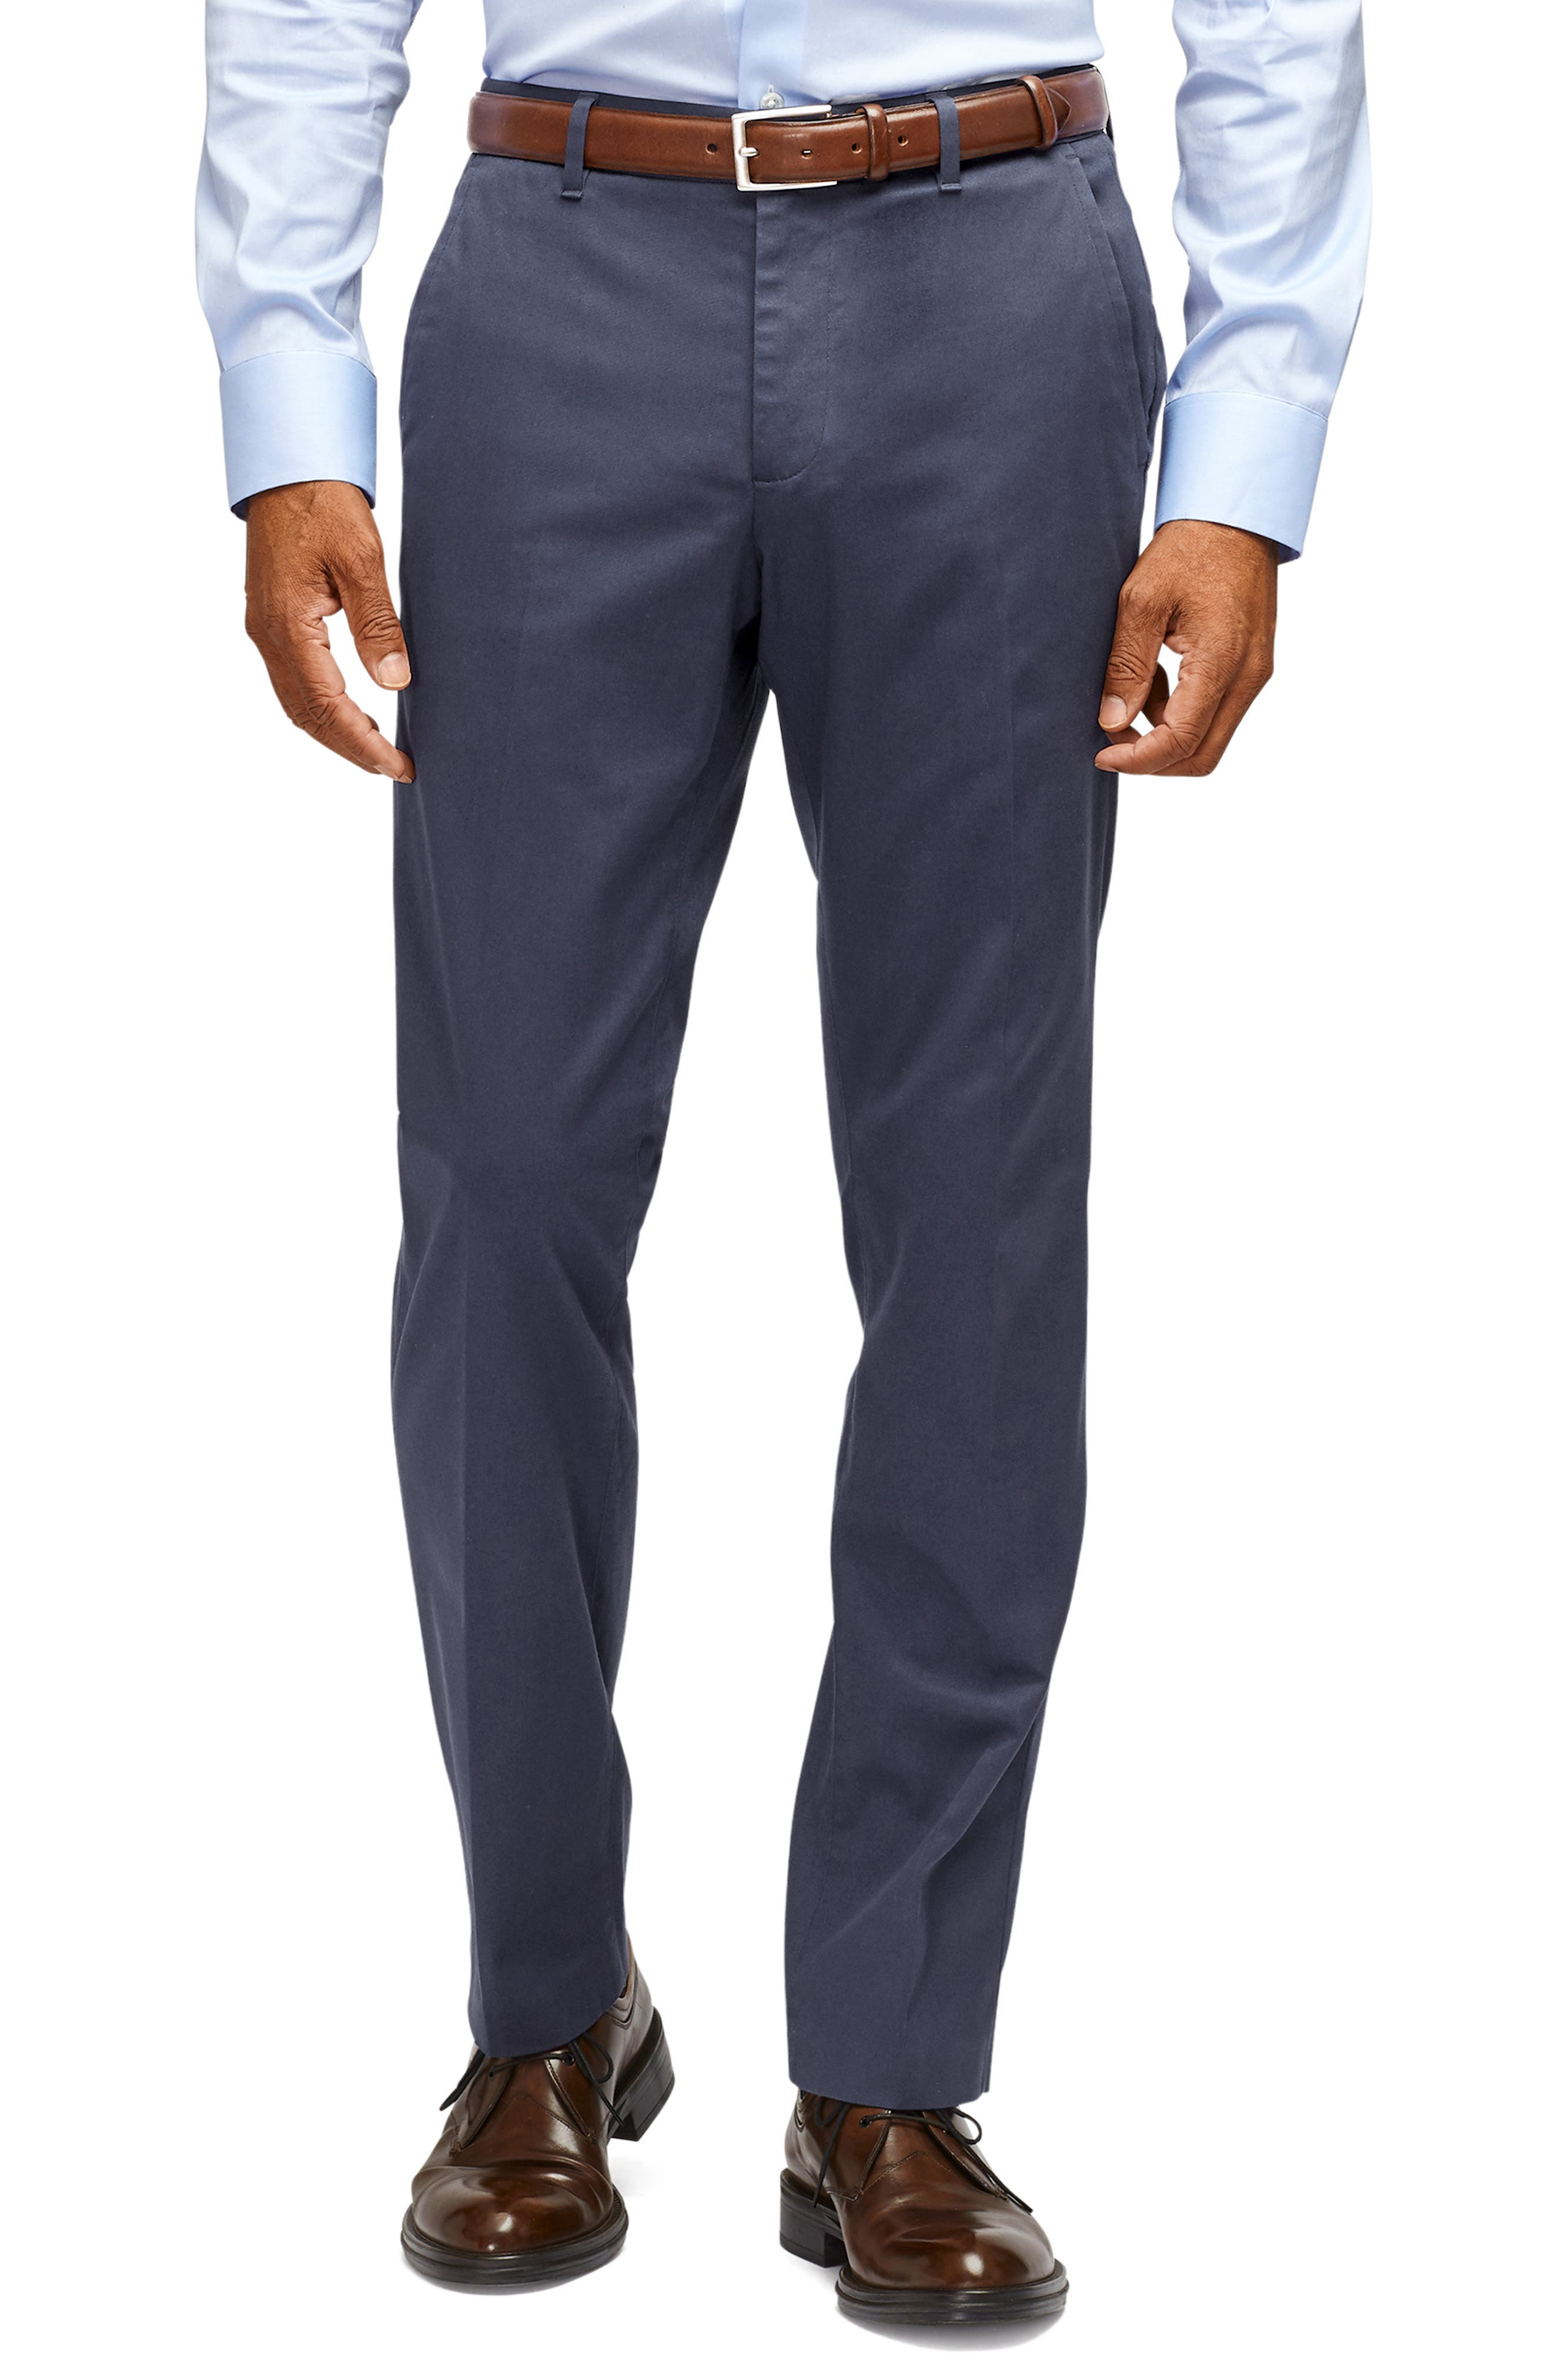 A sharp look for any day of the week, these flat-front pants are made from soft, easy-care stretch fabric and cut for a trim (but not tight) fit. Style Name: Bonobos Stretch Weekday Warrior Slim Fit Dress Pants. Style Number: 5647316 8. Available in stores.